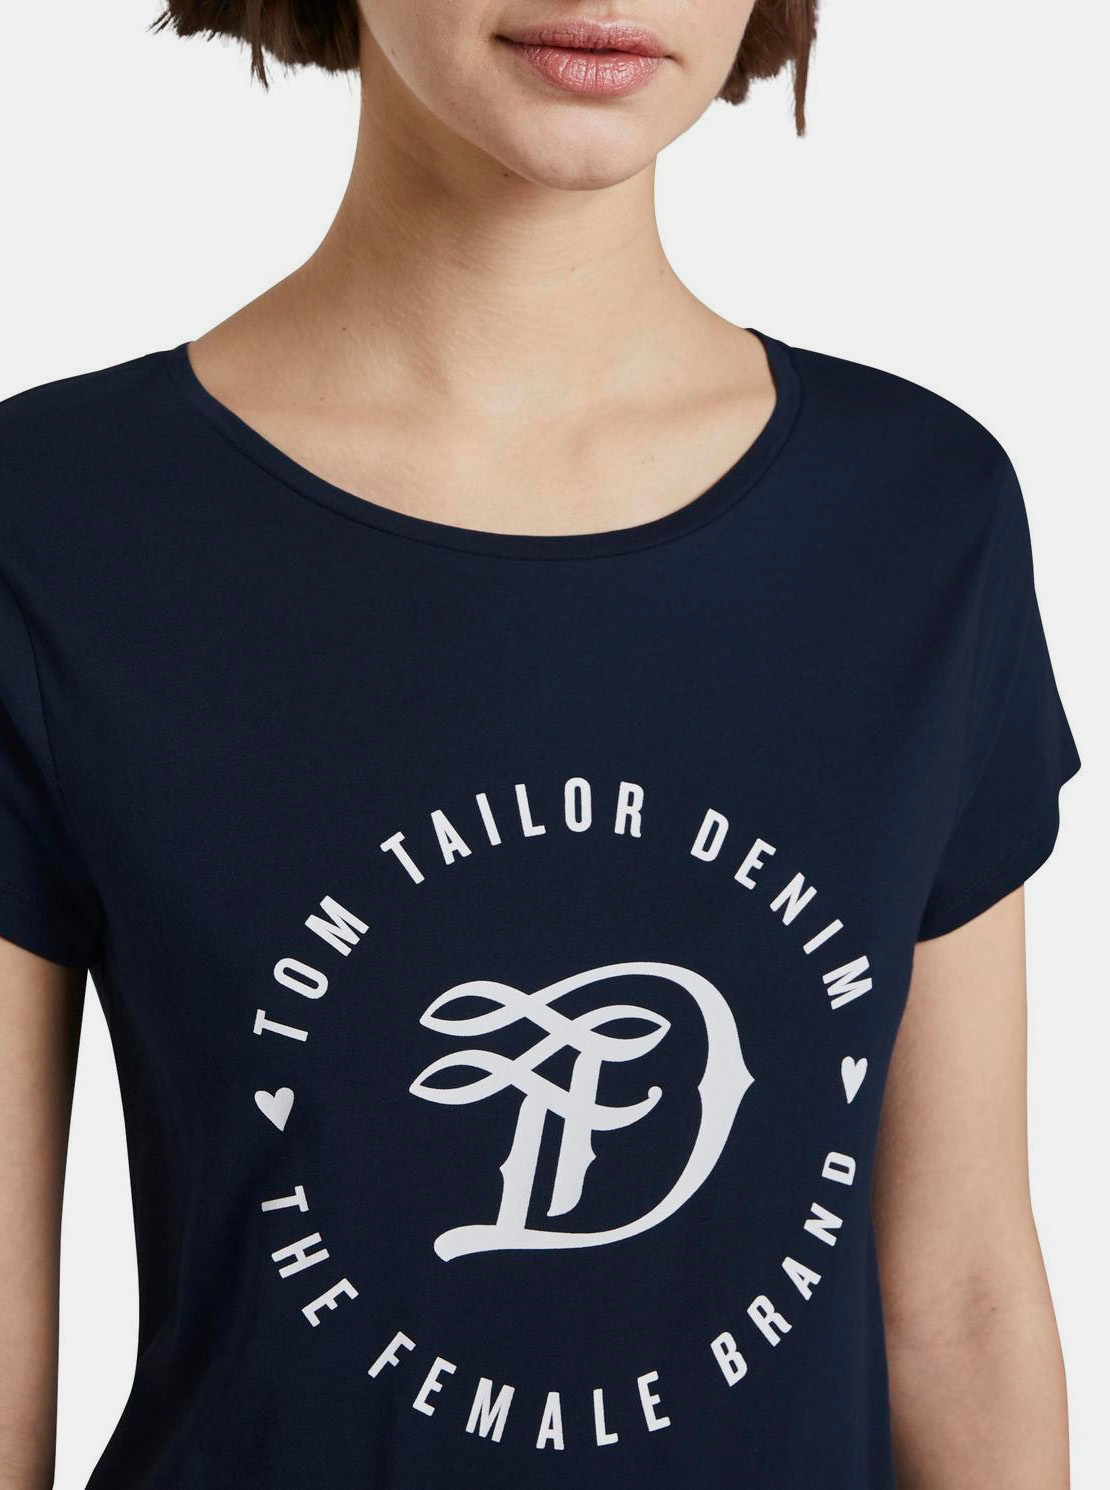 Tom Tailor Denim modré tričko s logom